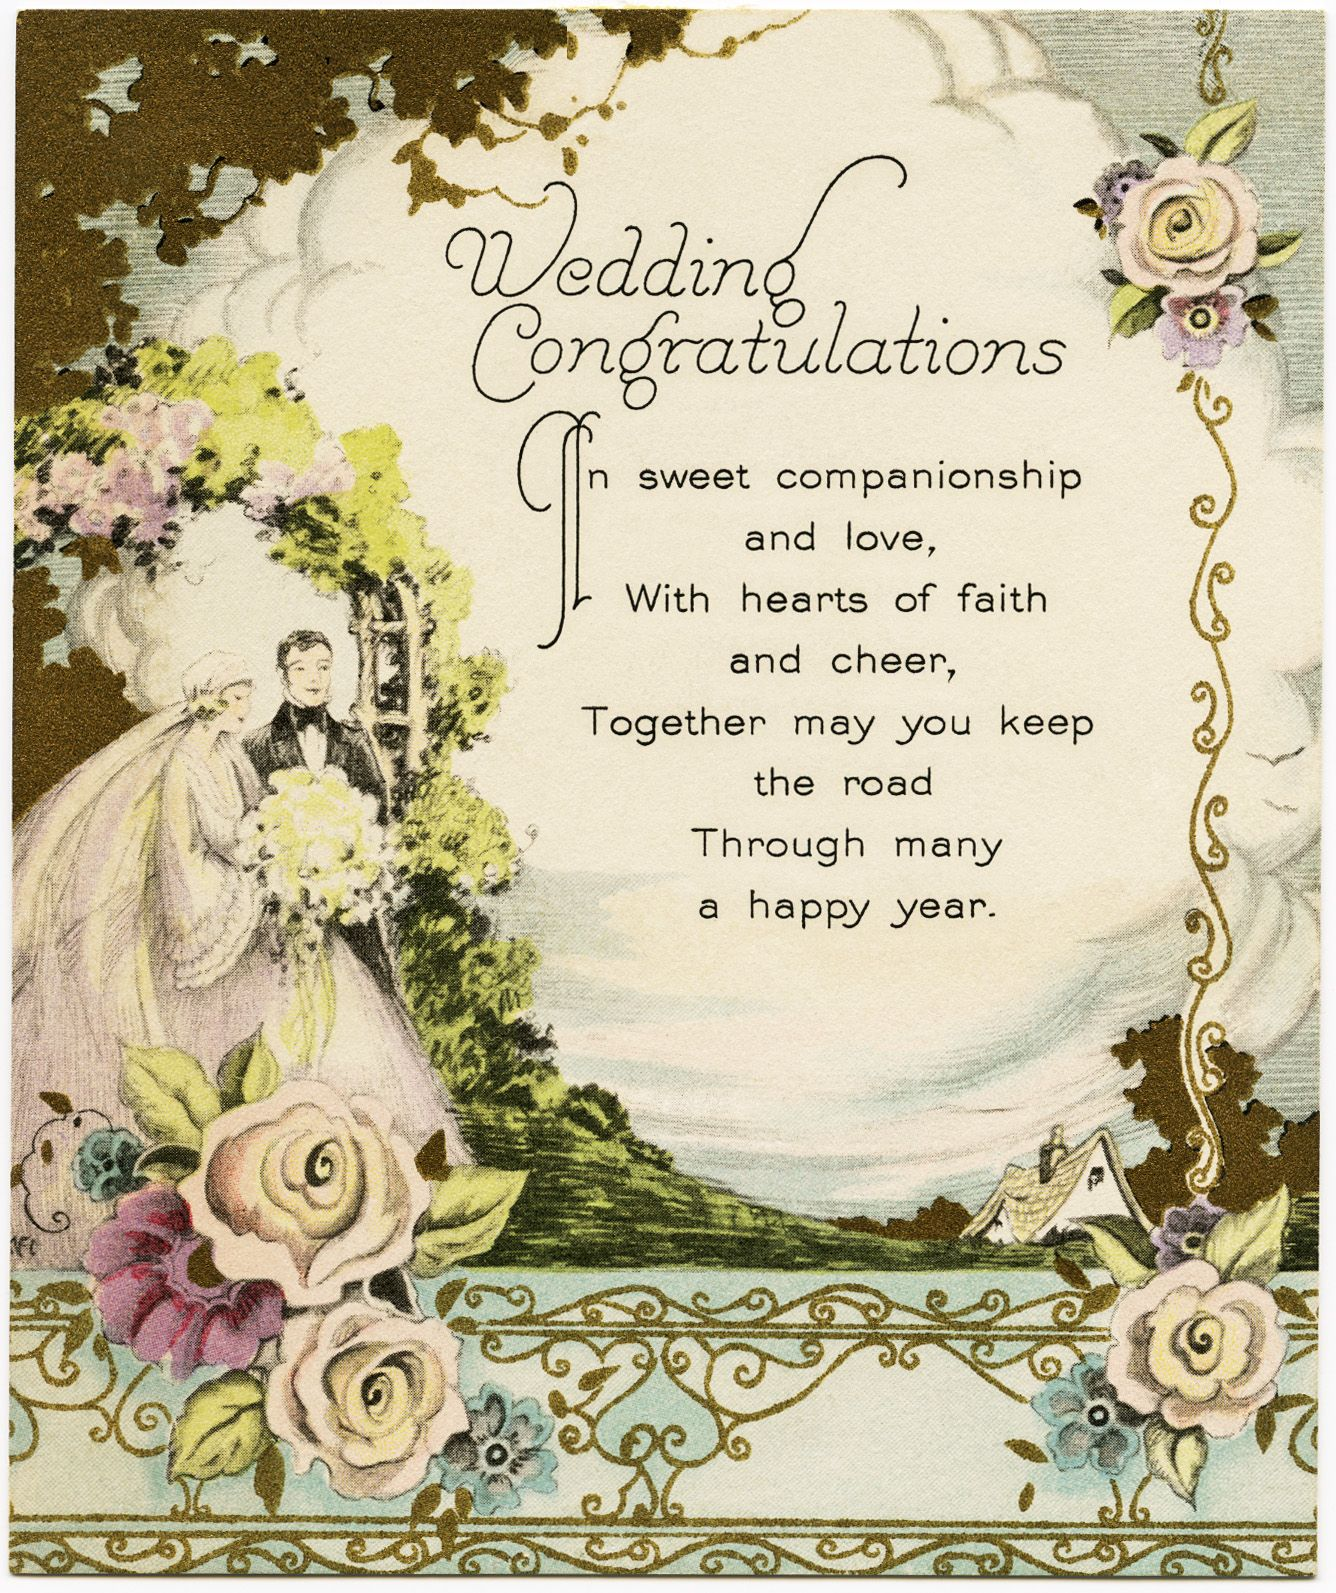 congratulations wedding card messages-Wedding Card Messages Ideas